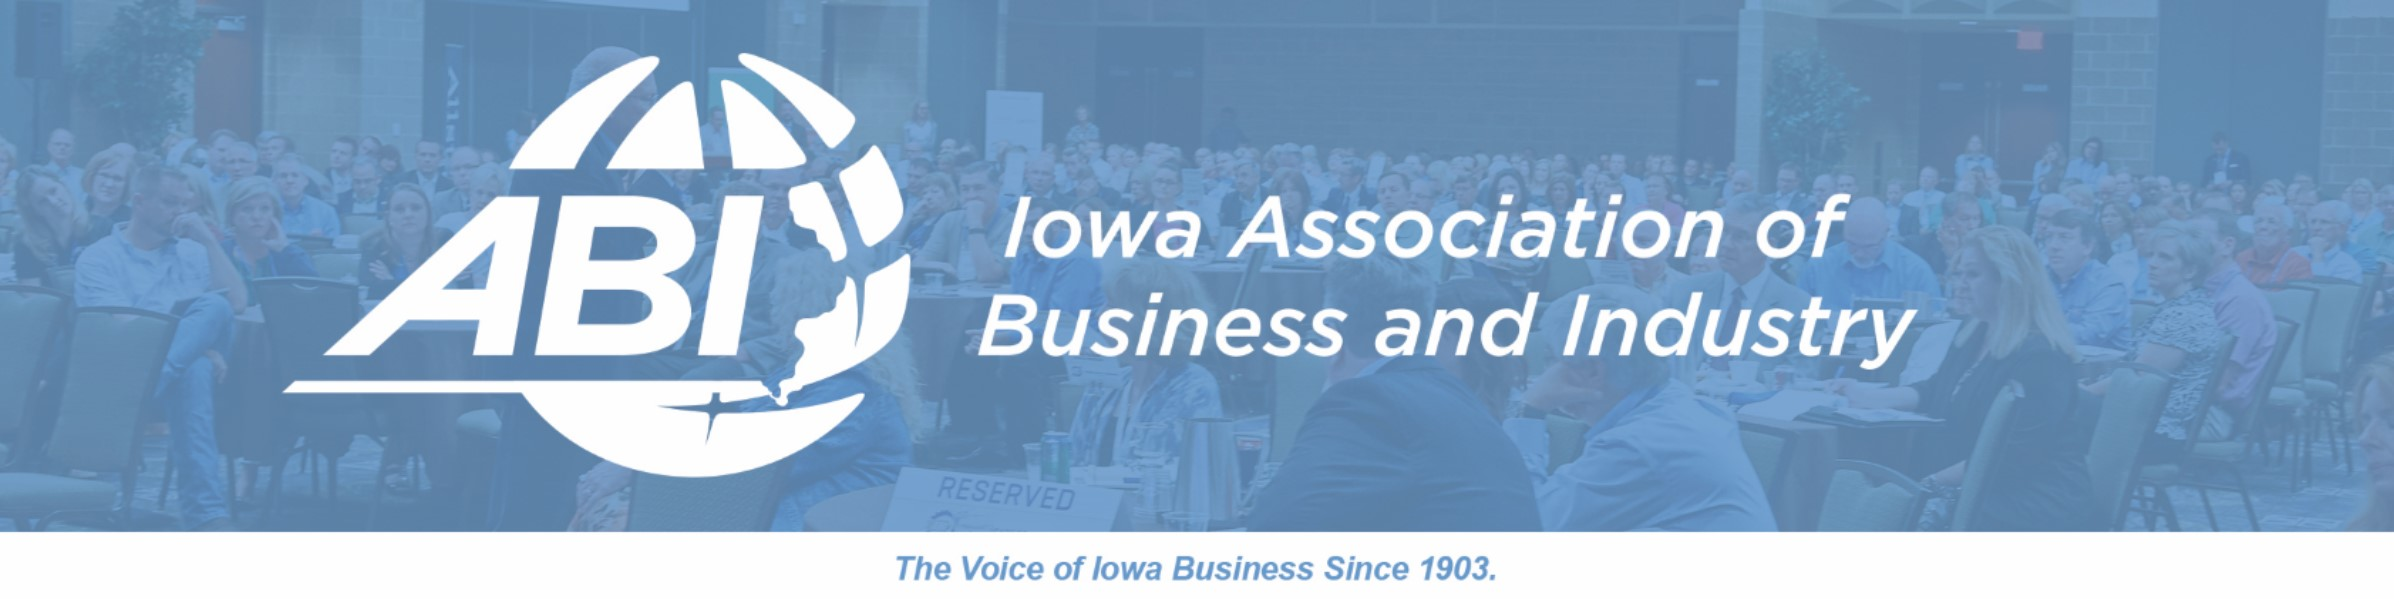 Connecting Statewide Leaders - Bringing Boji Back